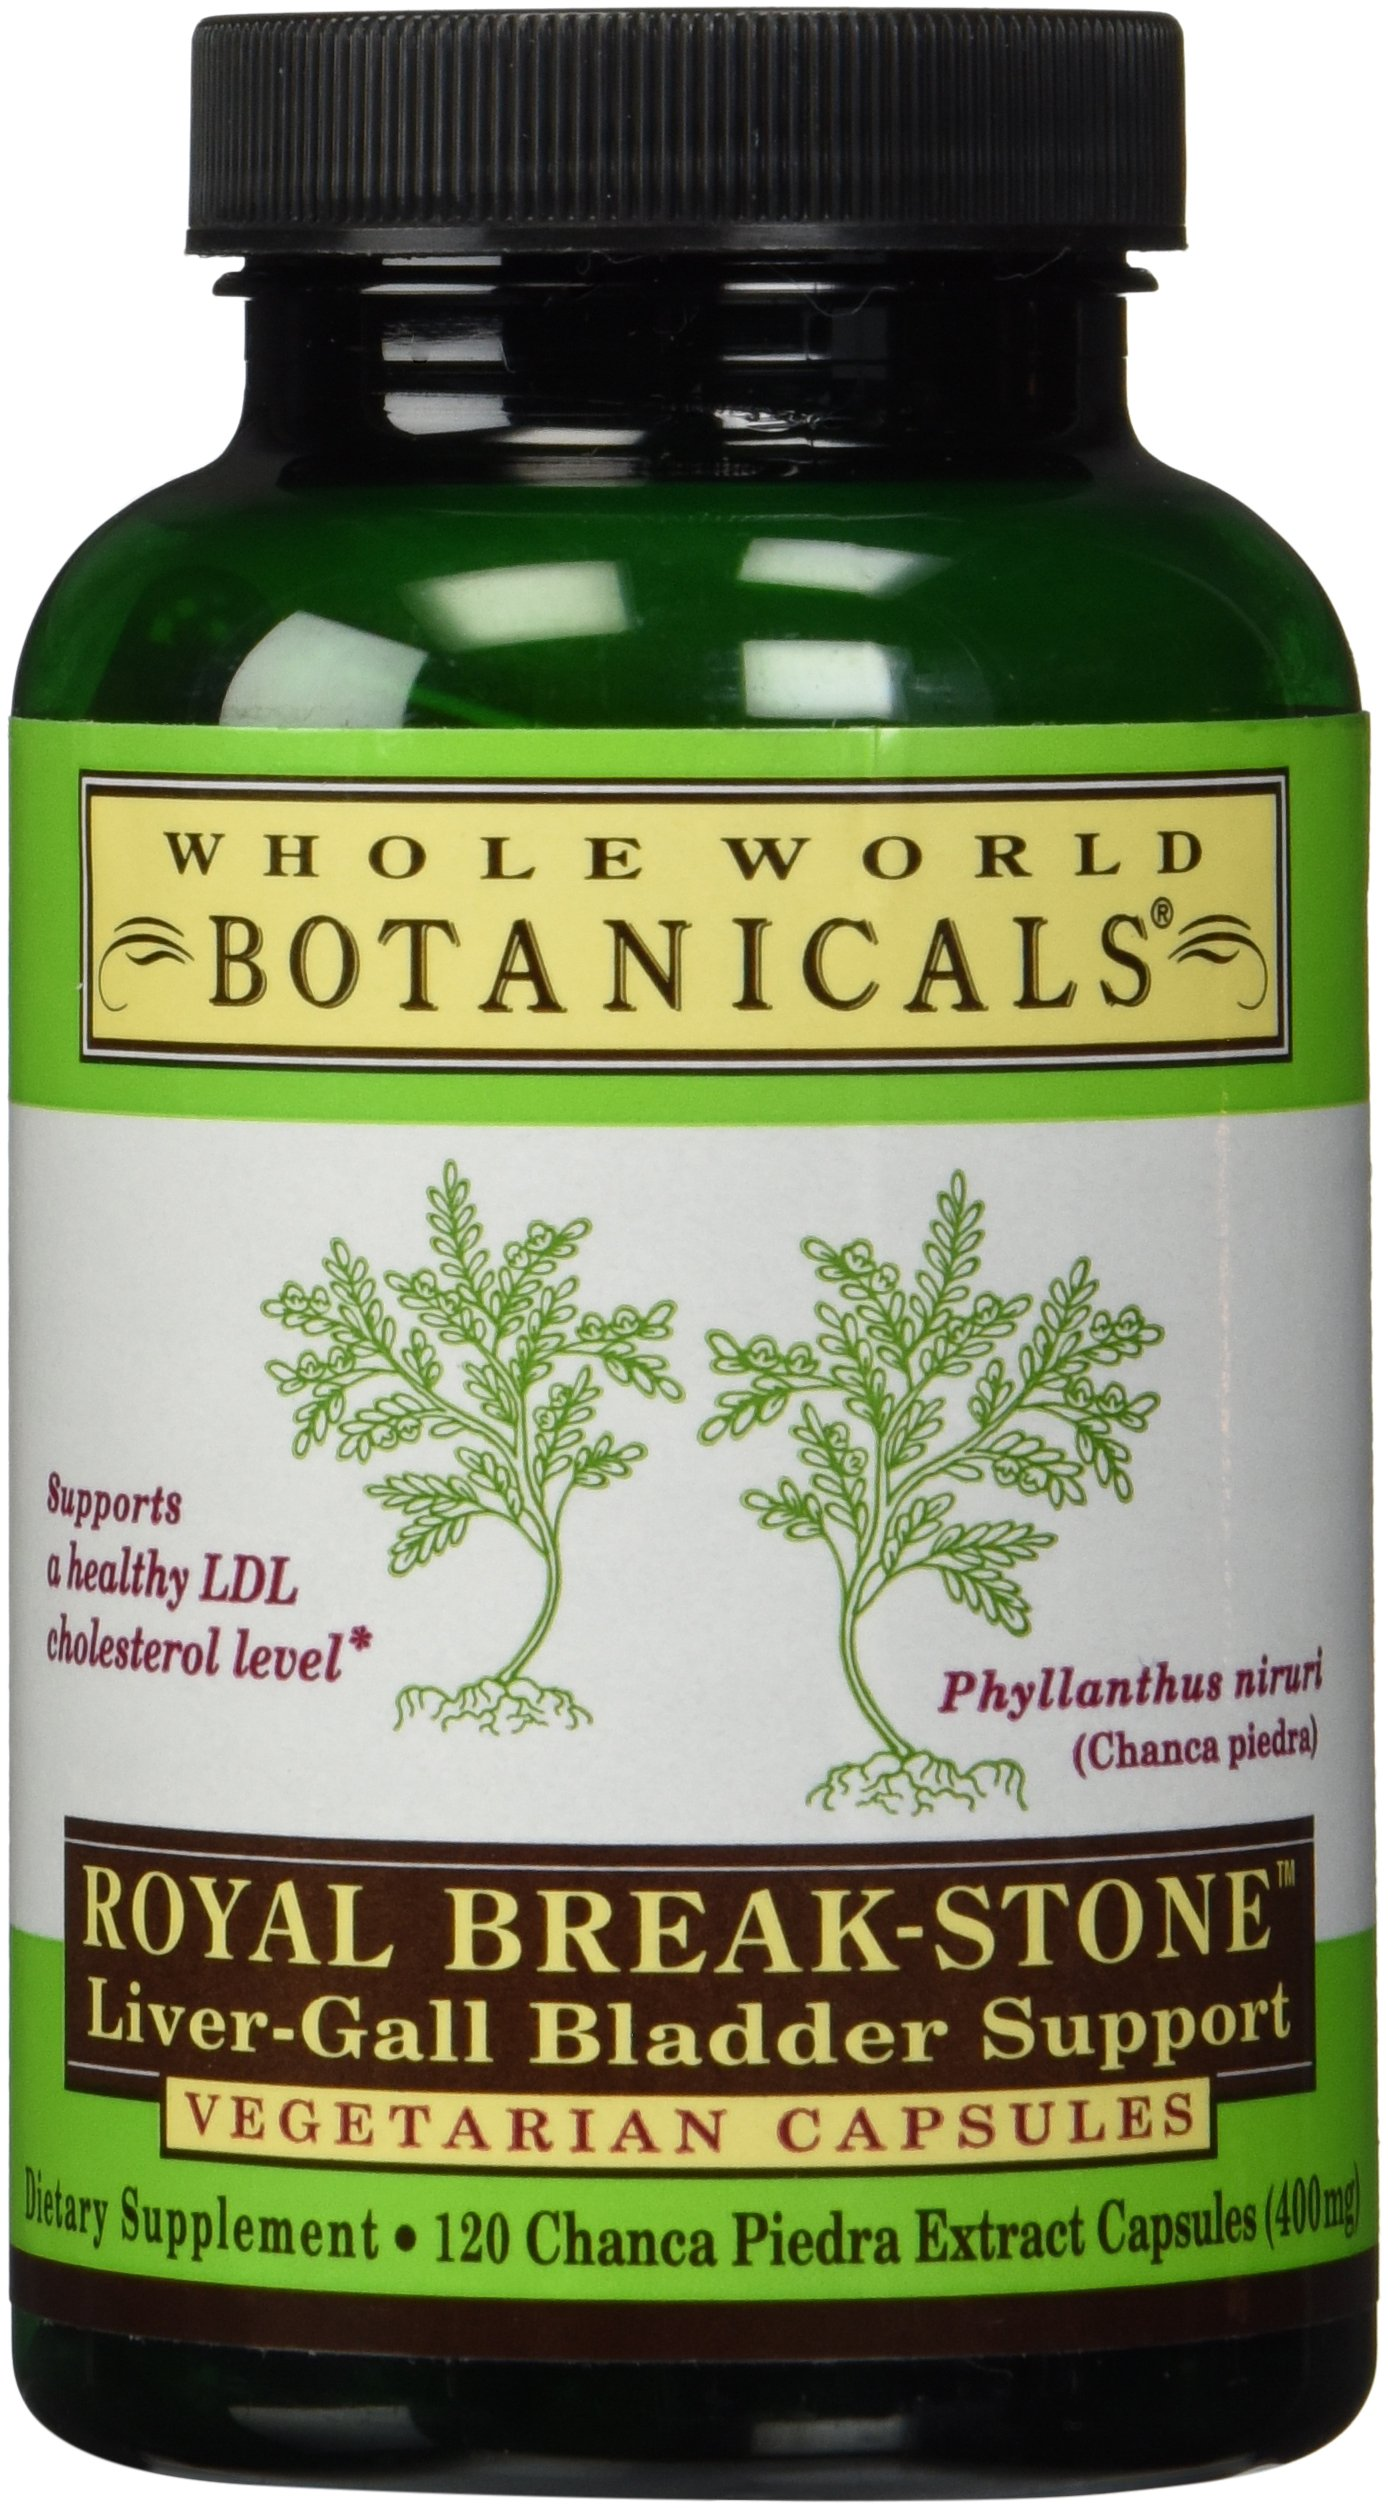 Whole World Botanicals Royal Break-Stone Liver-Gall Bladder Support 400 mg 120 Vegetarian Capsules